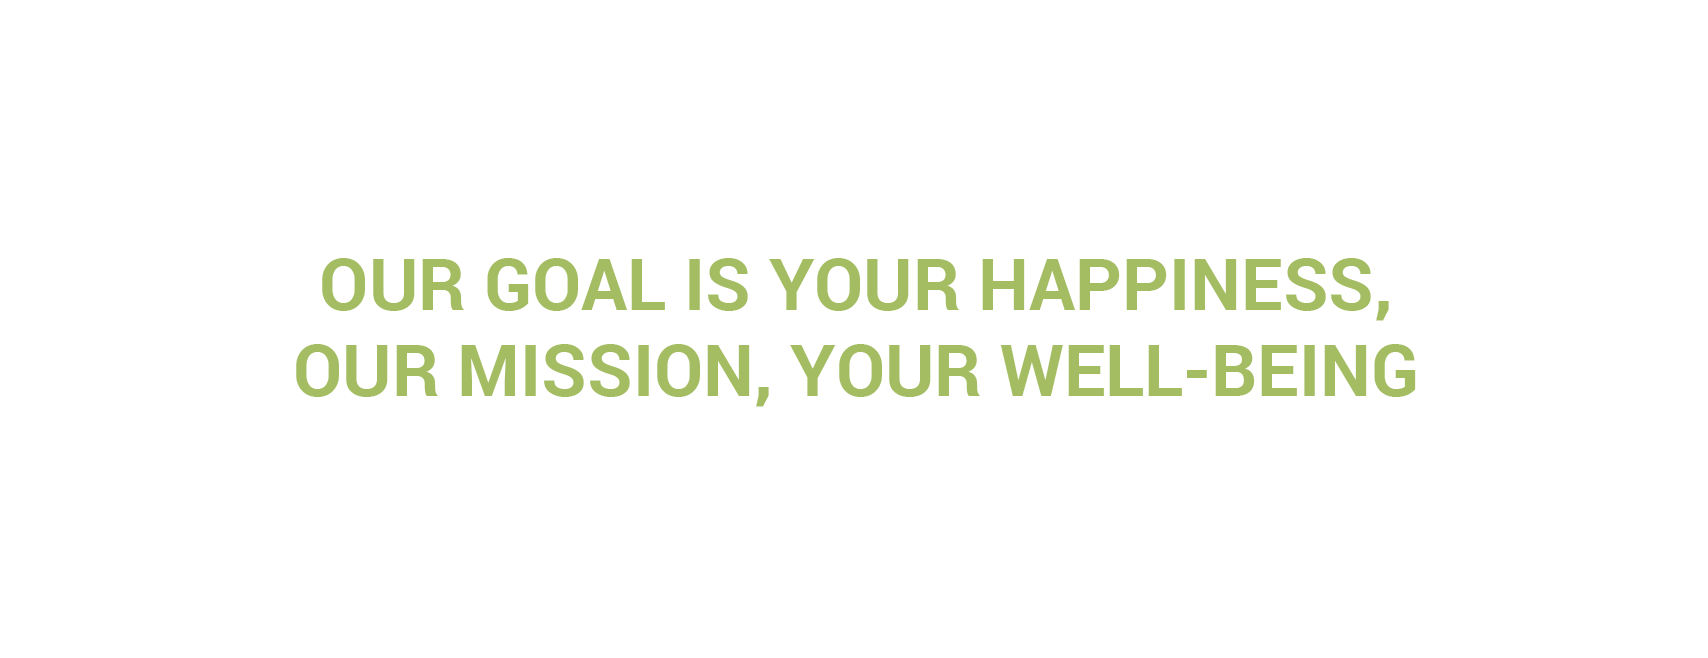 Our goal is your happiness, our mission, your well-being